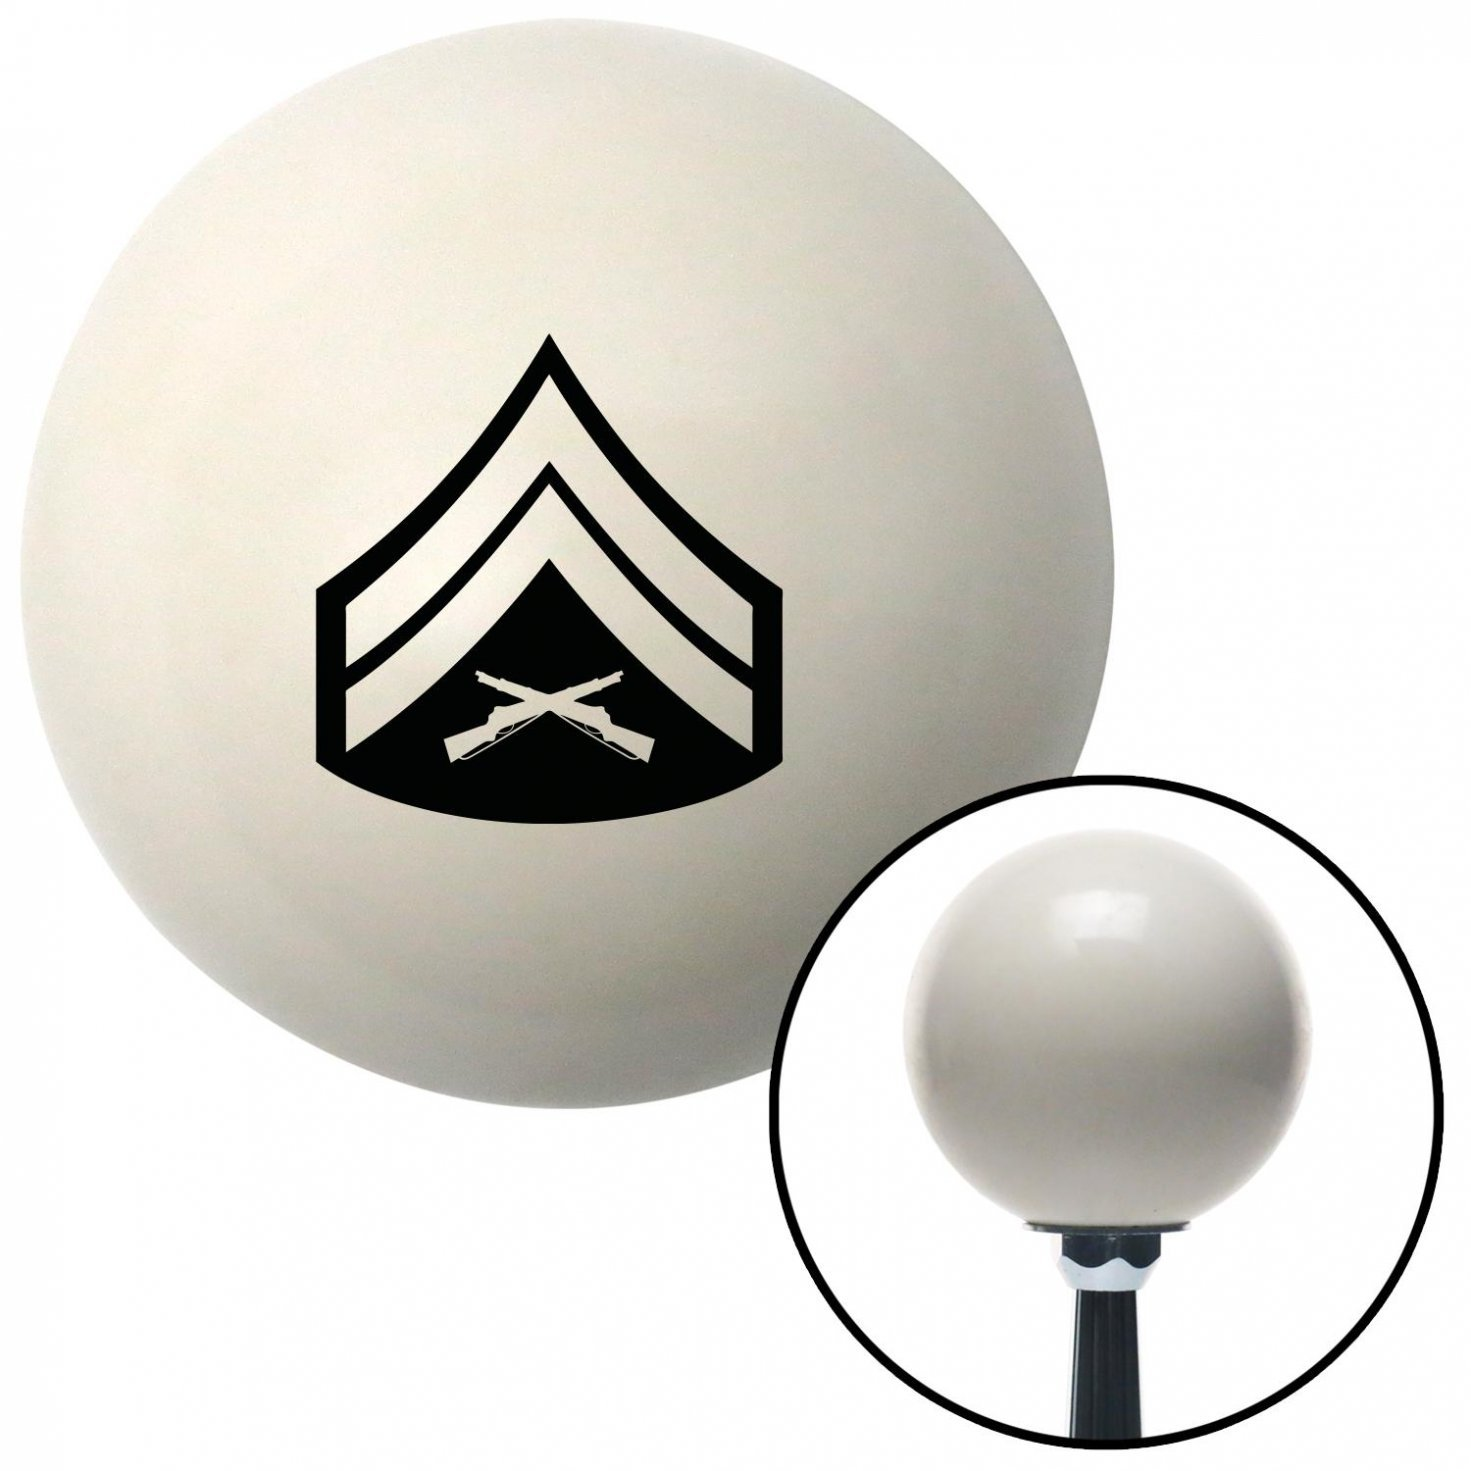 Black 03 Corporal American Shifter 40698 Ivory Shift Knob with 16mm x 1.5 Insert